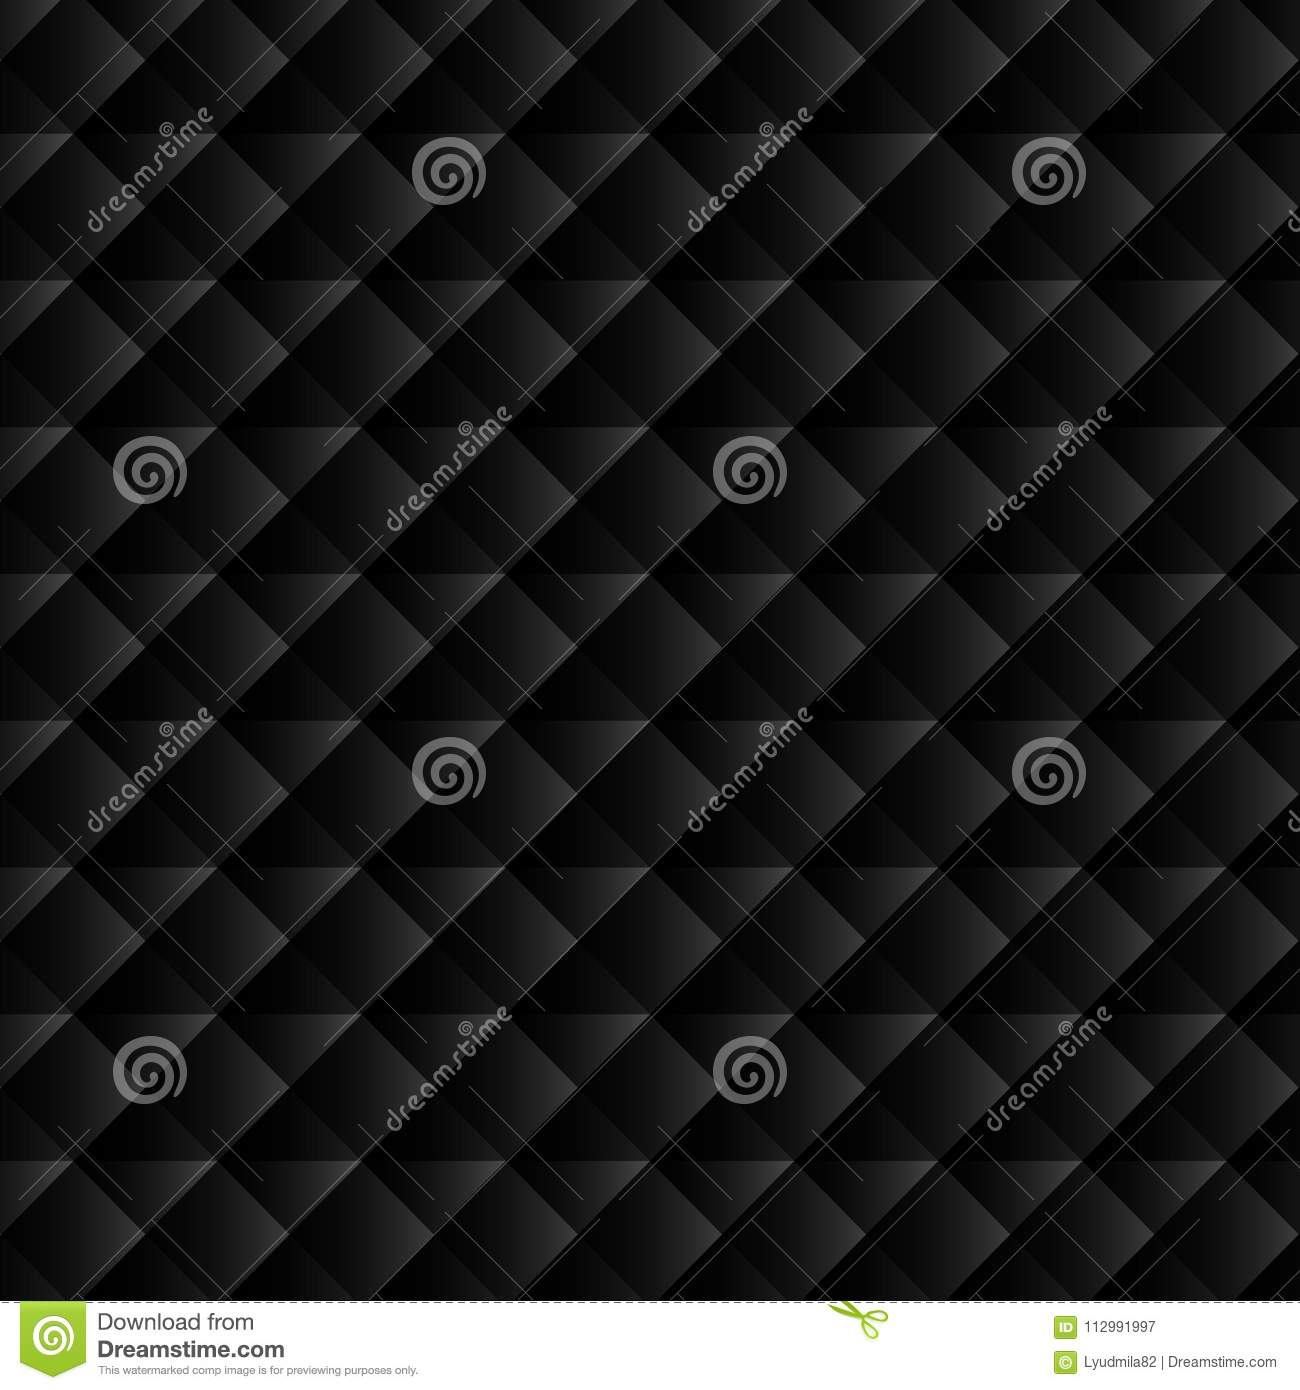 Black geometric background for website decoration, banner, leaflet, top cover, packaging.